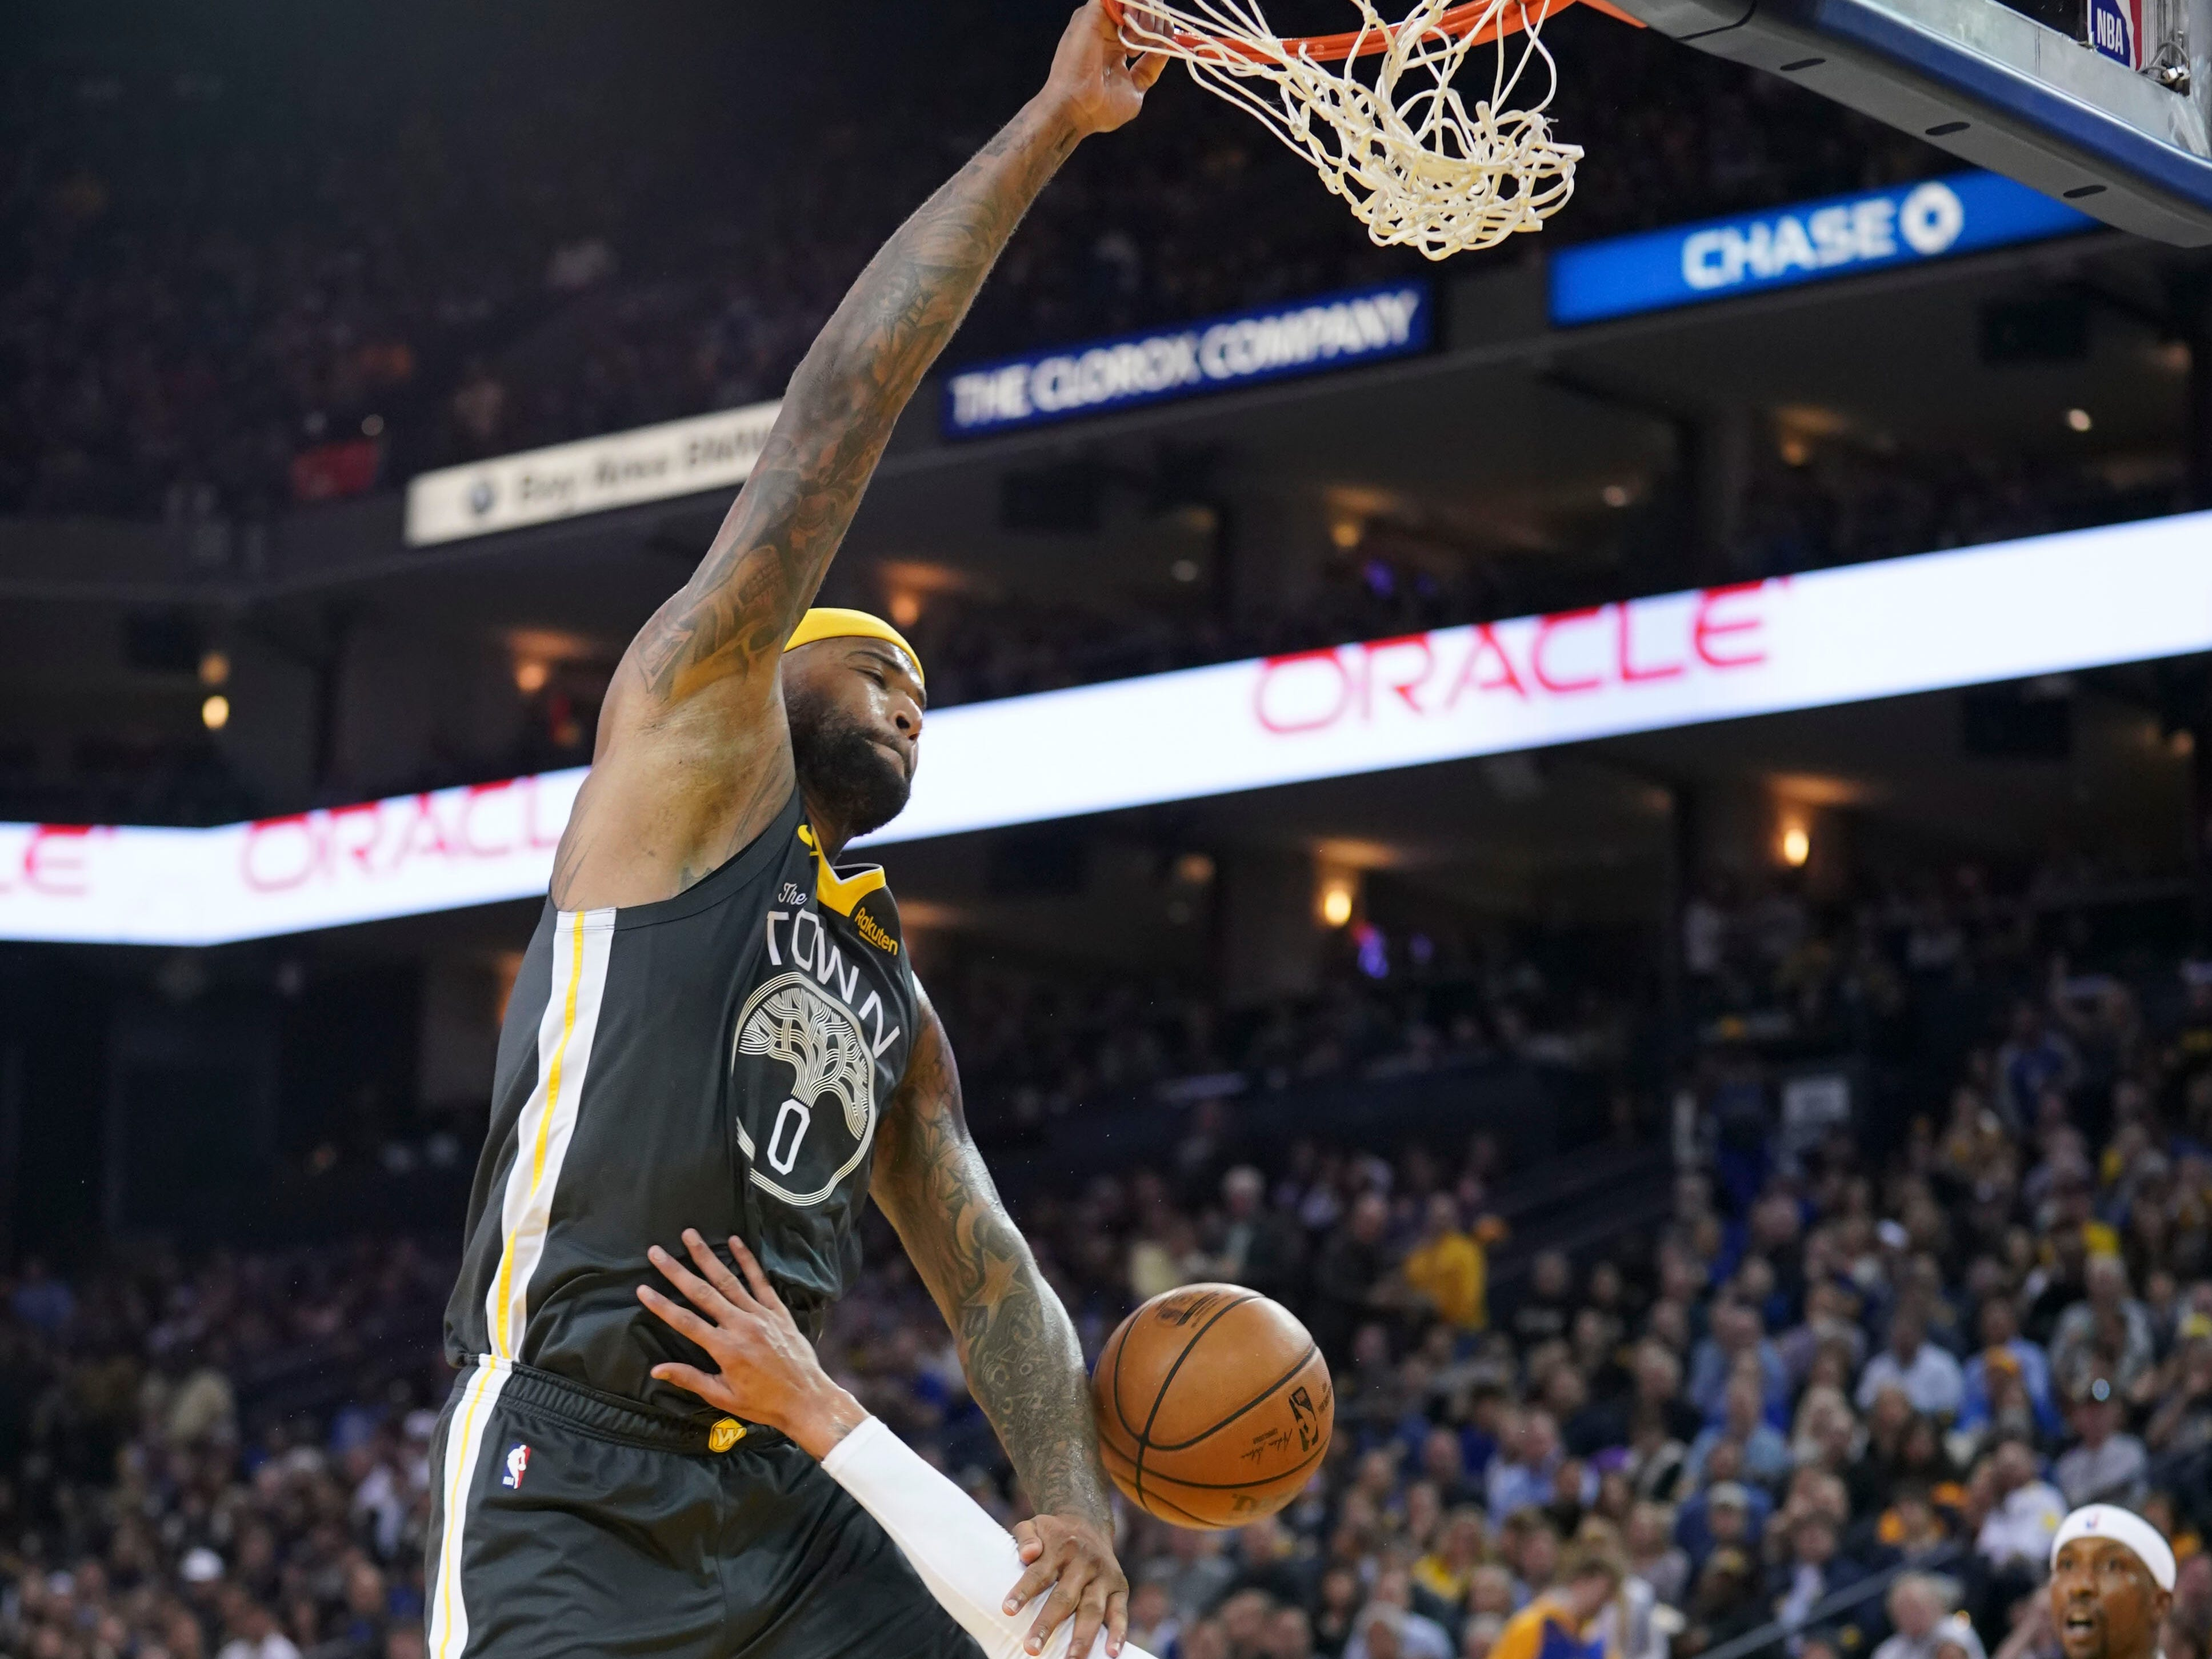 Feb. 2: Warriors center DeMarcus Cousins sends the Oracle Arena crowd into a frenzy with a huge one-handed slam over Lakers defender Kyle Kuzma.